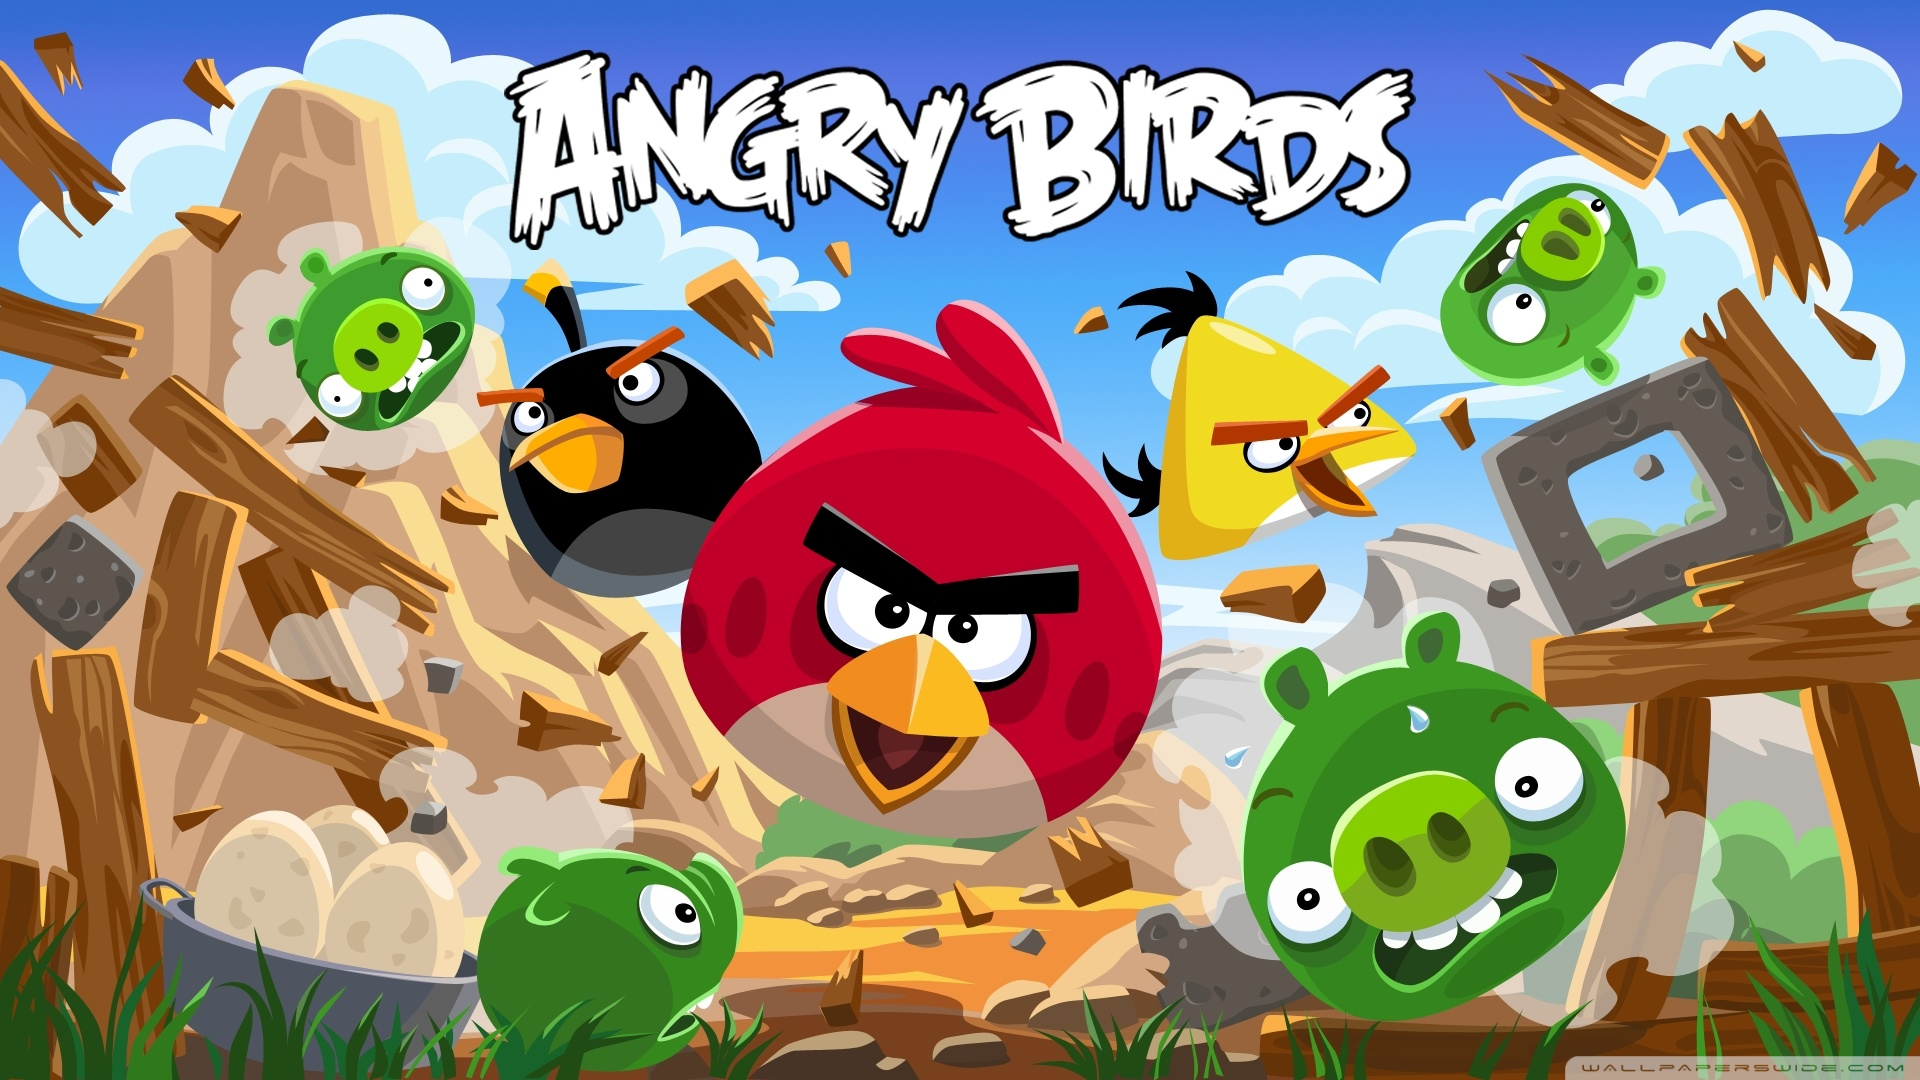 Angry Birds New Version HD Wide Wallpaper for Widescreen